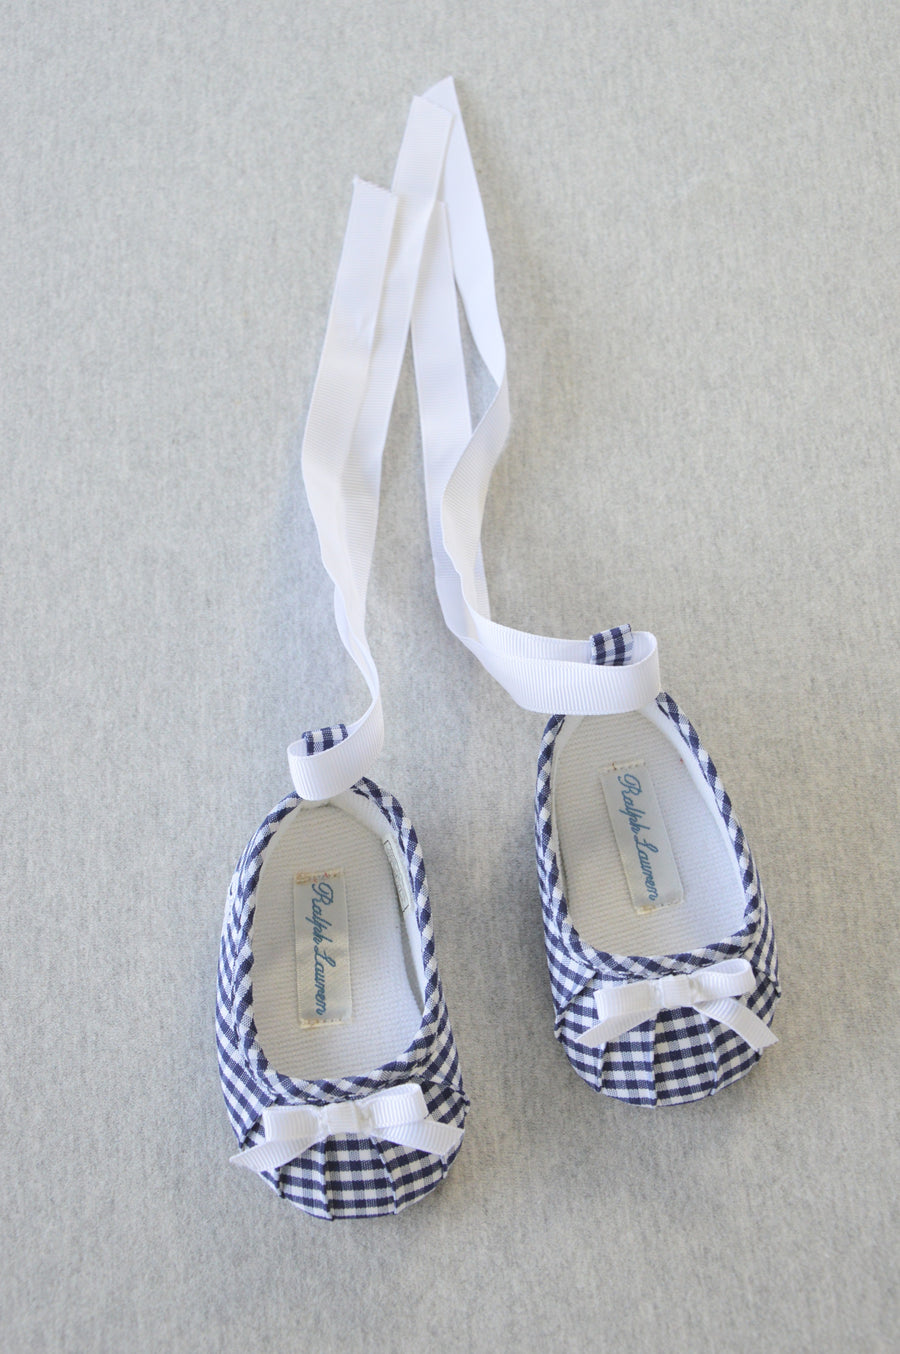 Ralph Lauren - nearly new - navy & white gingham ballerina shoes, size NB (shoe size US 0)